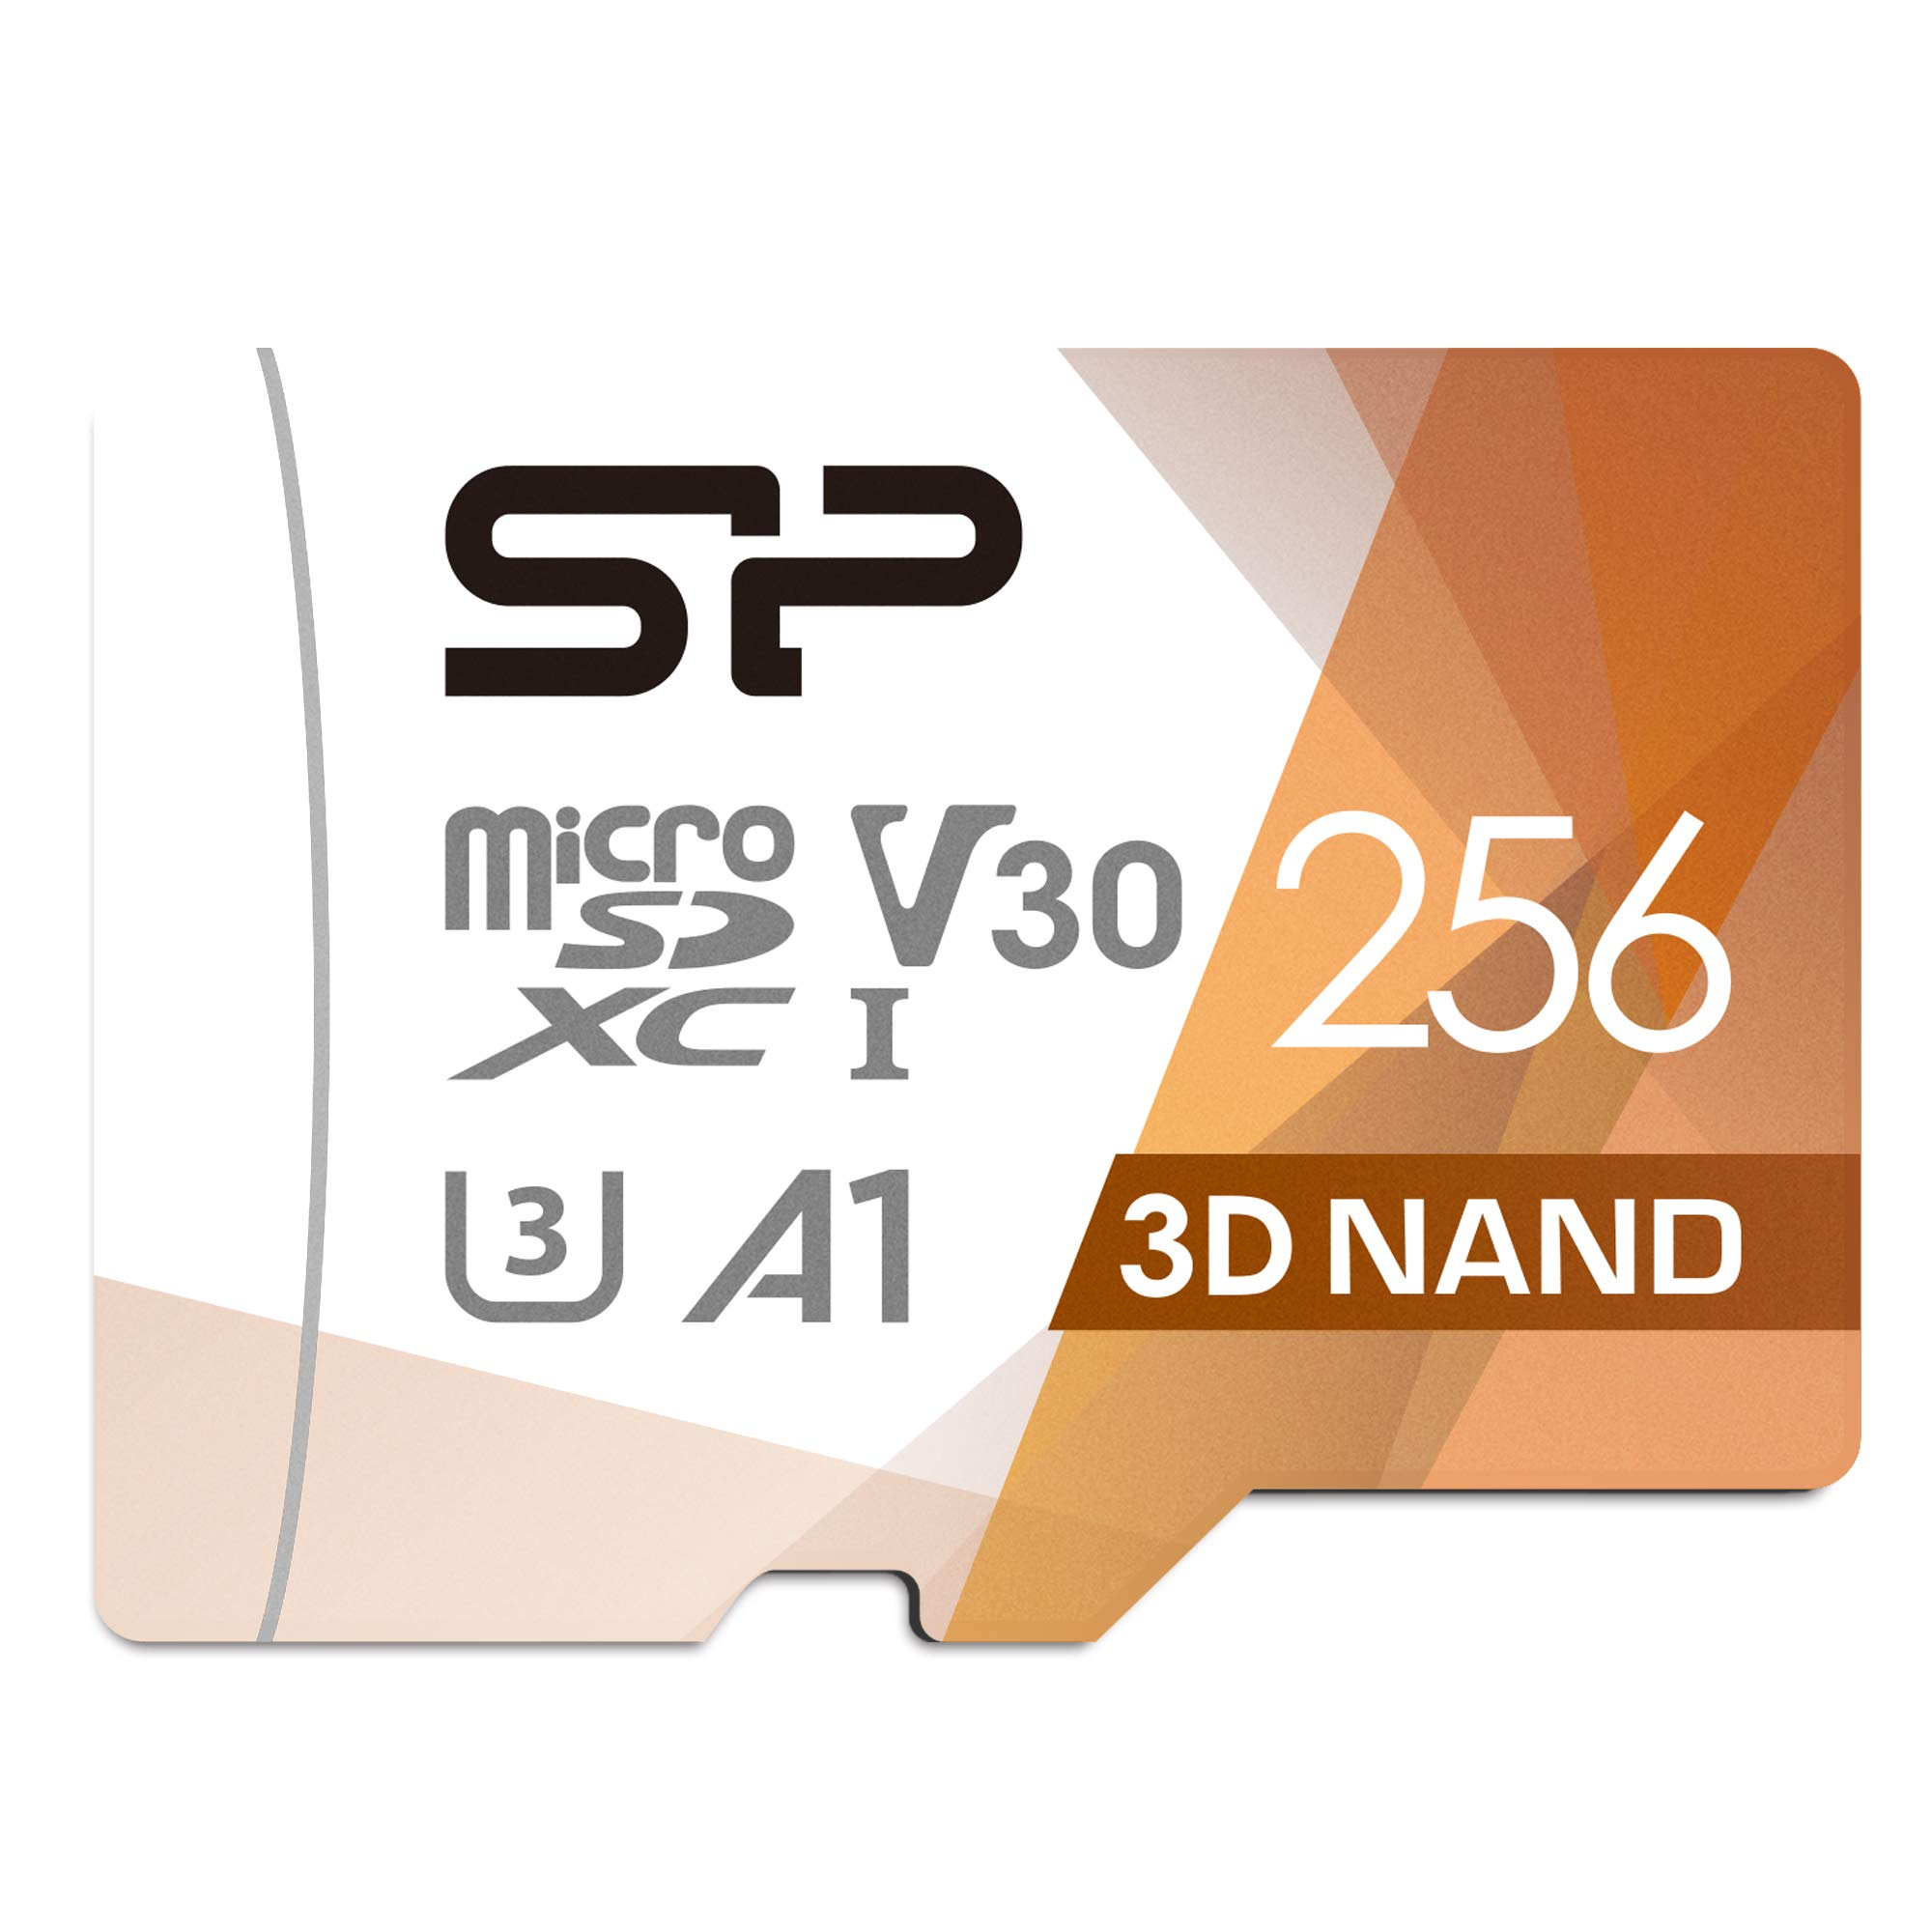 Silicon Power 256GB R/W up to 100/ 80MB/s Superior Pro microSDXC UHS-I (U3), V30 4K A1, High Speed MicroSD Card with Adapter